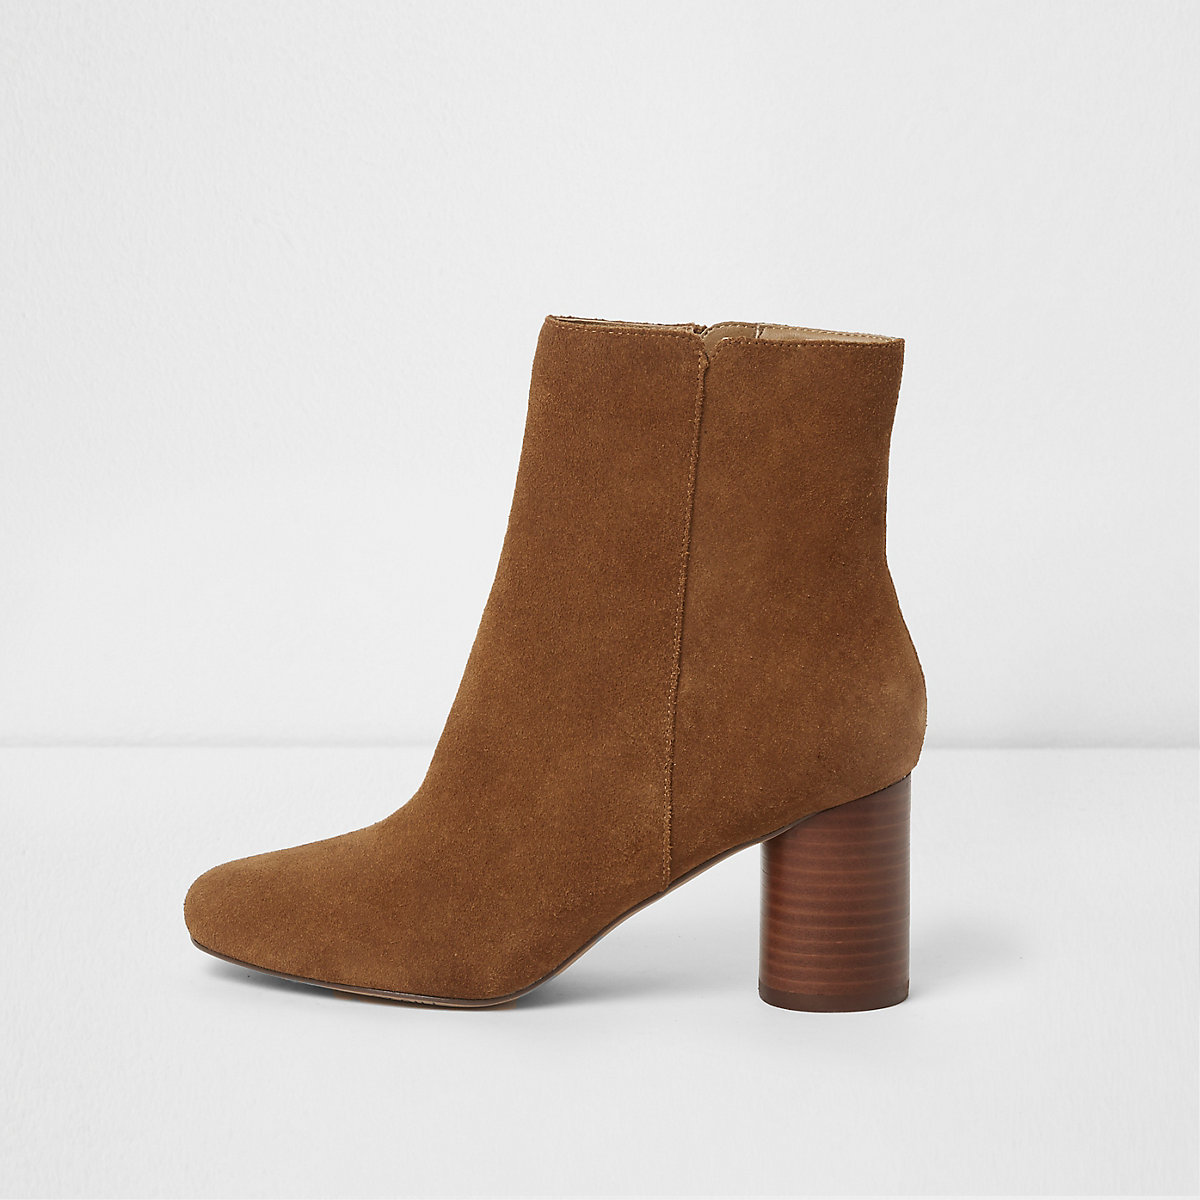 Tan brown block heel suede boots